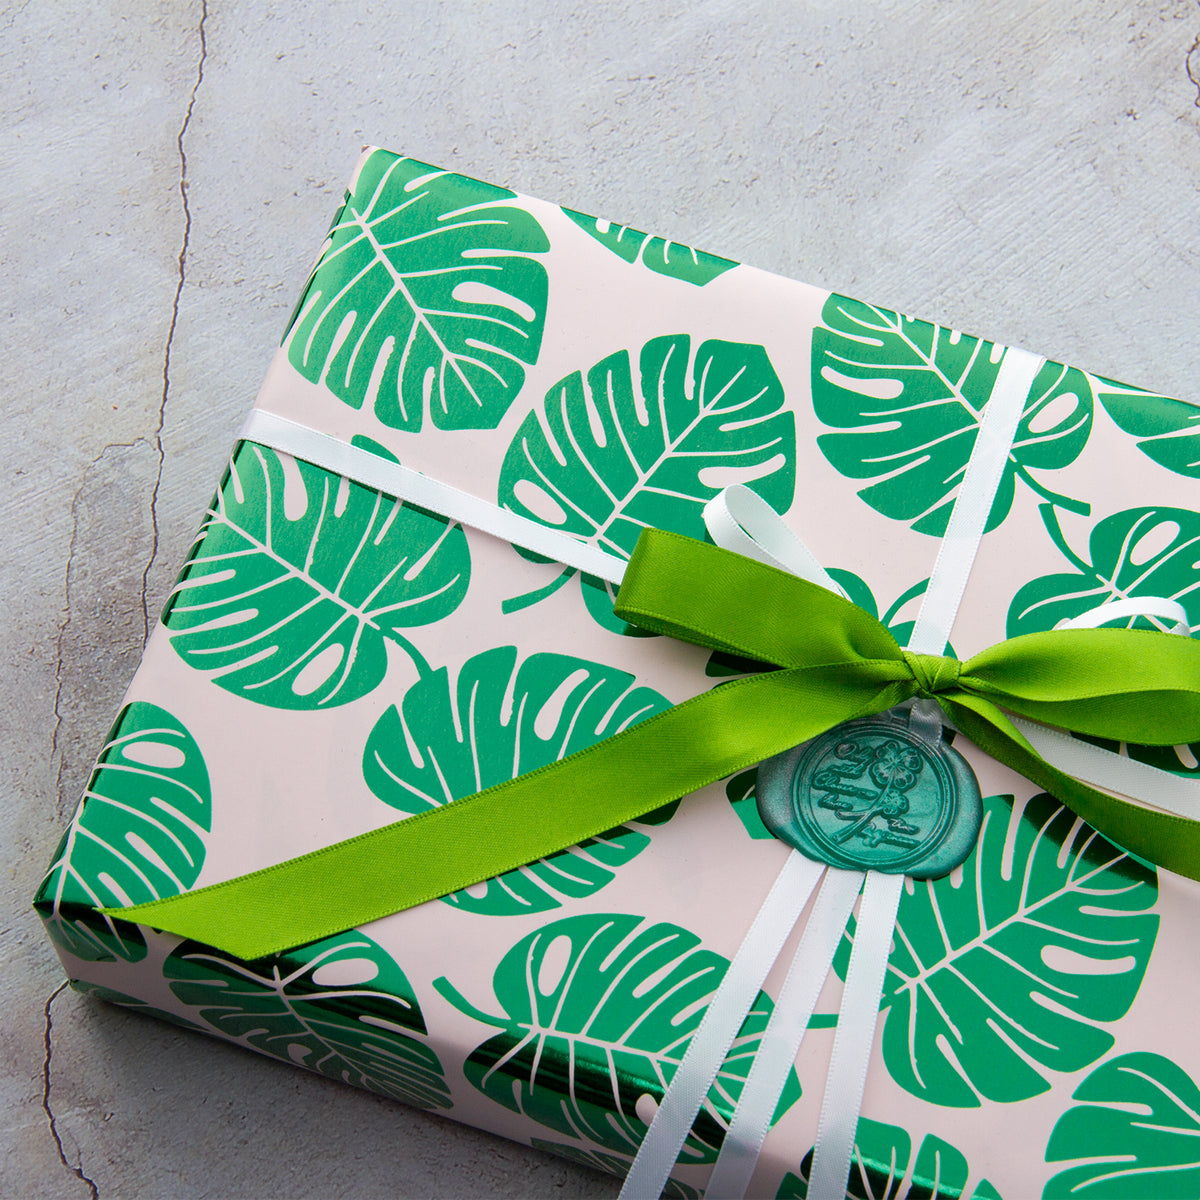 Wrapaholic-Green-Foil-Tropical-Palm-Leaves-Gift -Wrapping-Paper-Roll-5